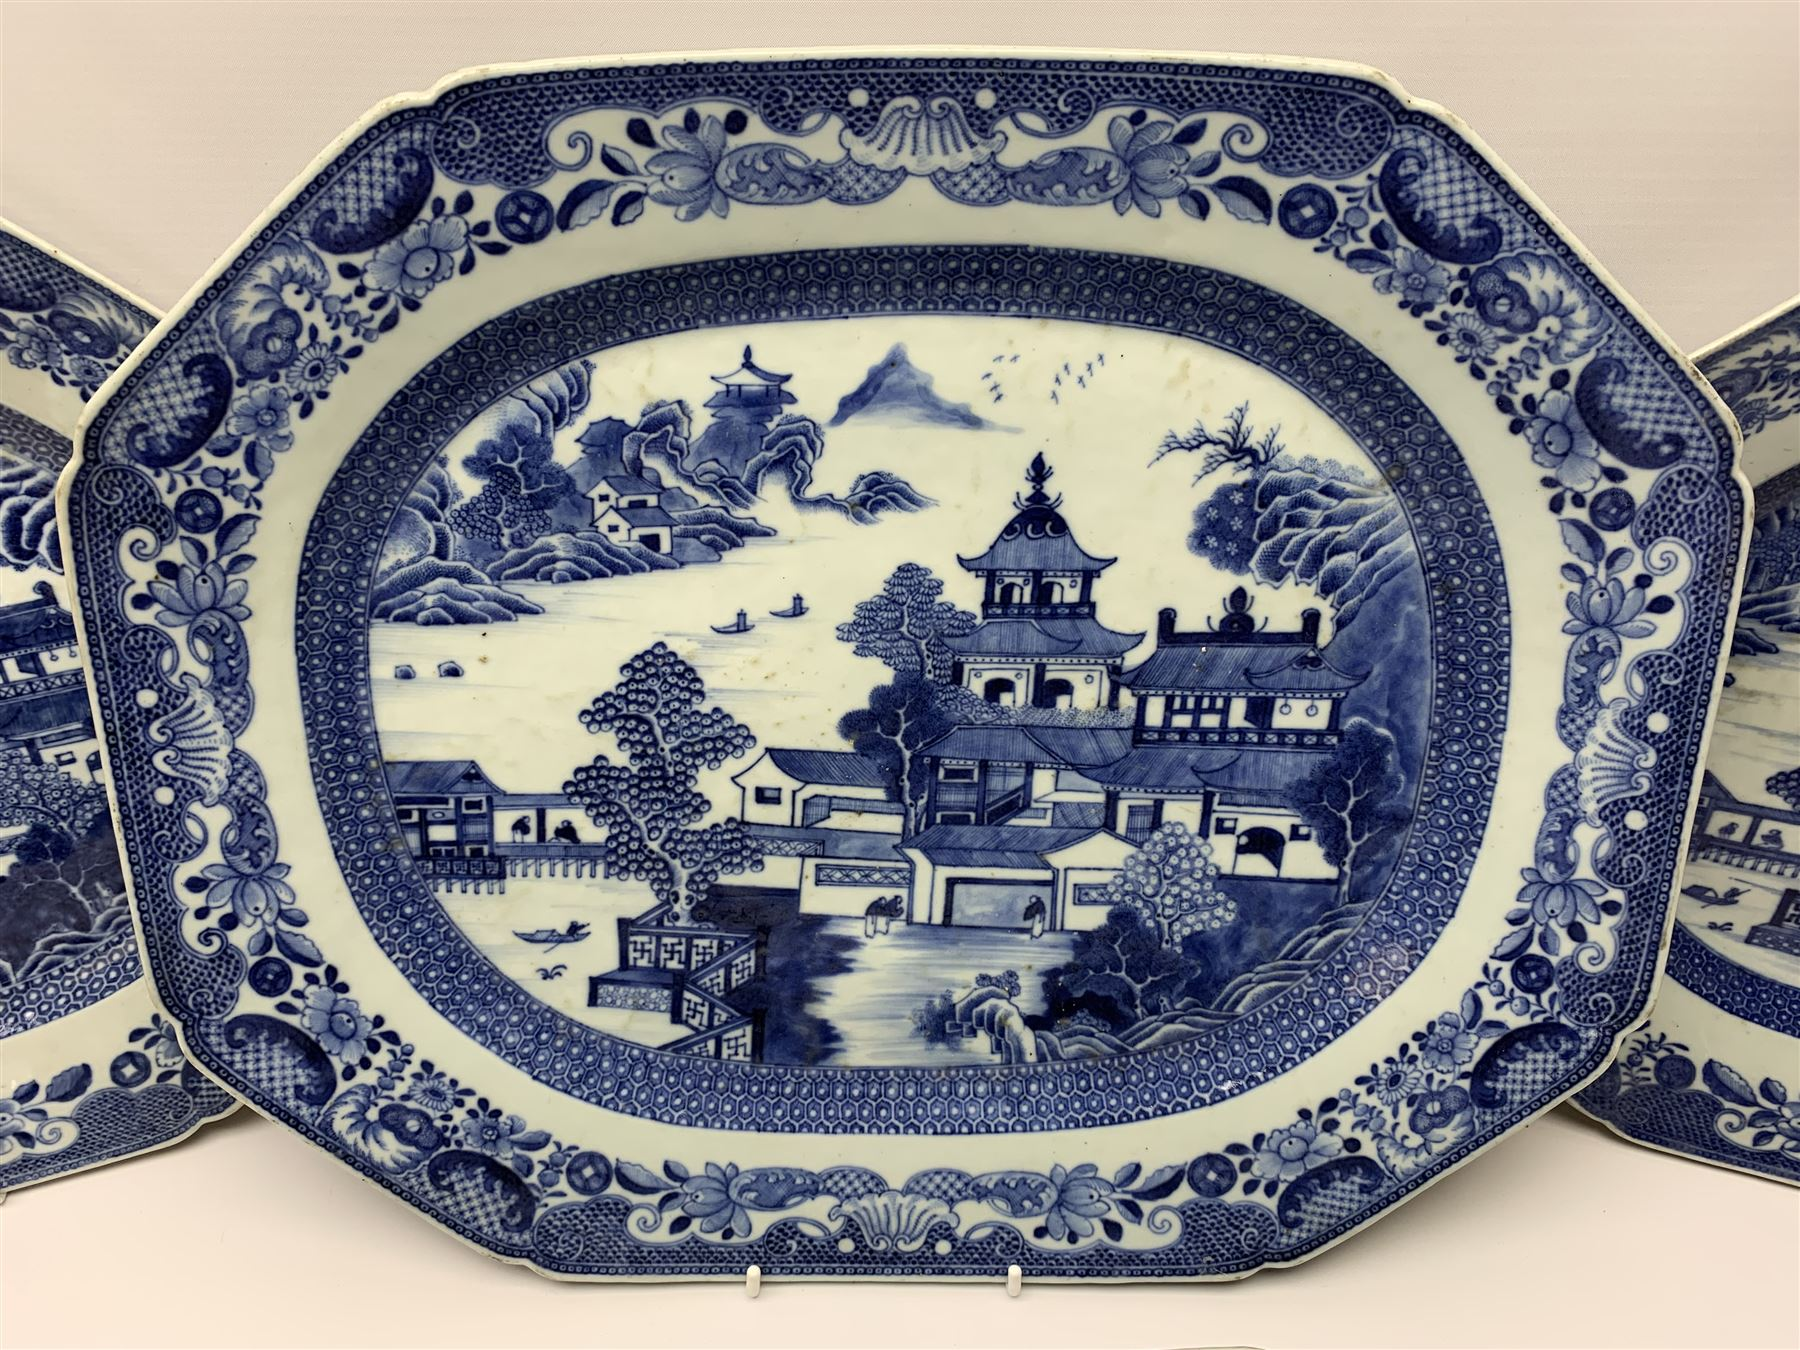 Late 18th/early 19th century Chinese export blue and white forty seven piece part dinner service - Image 2 of 20